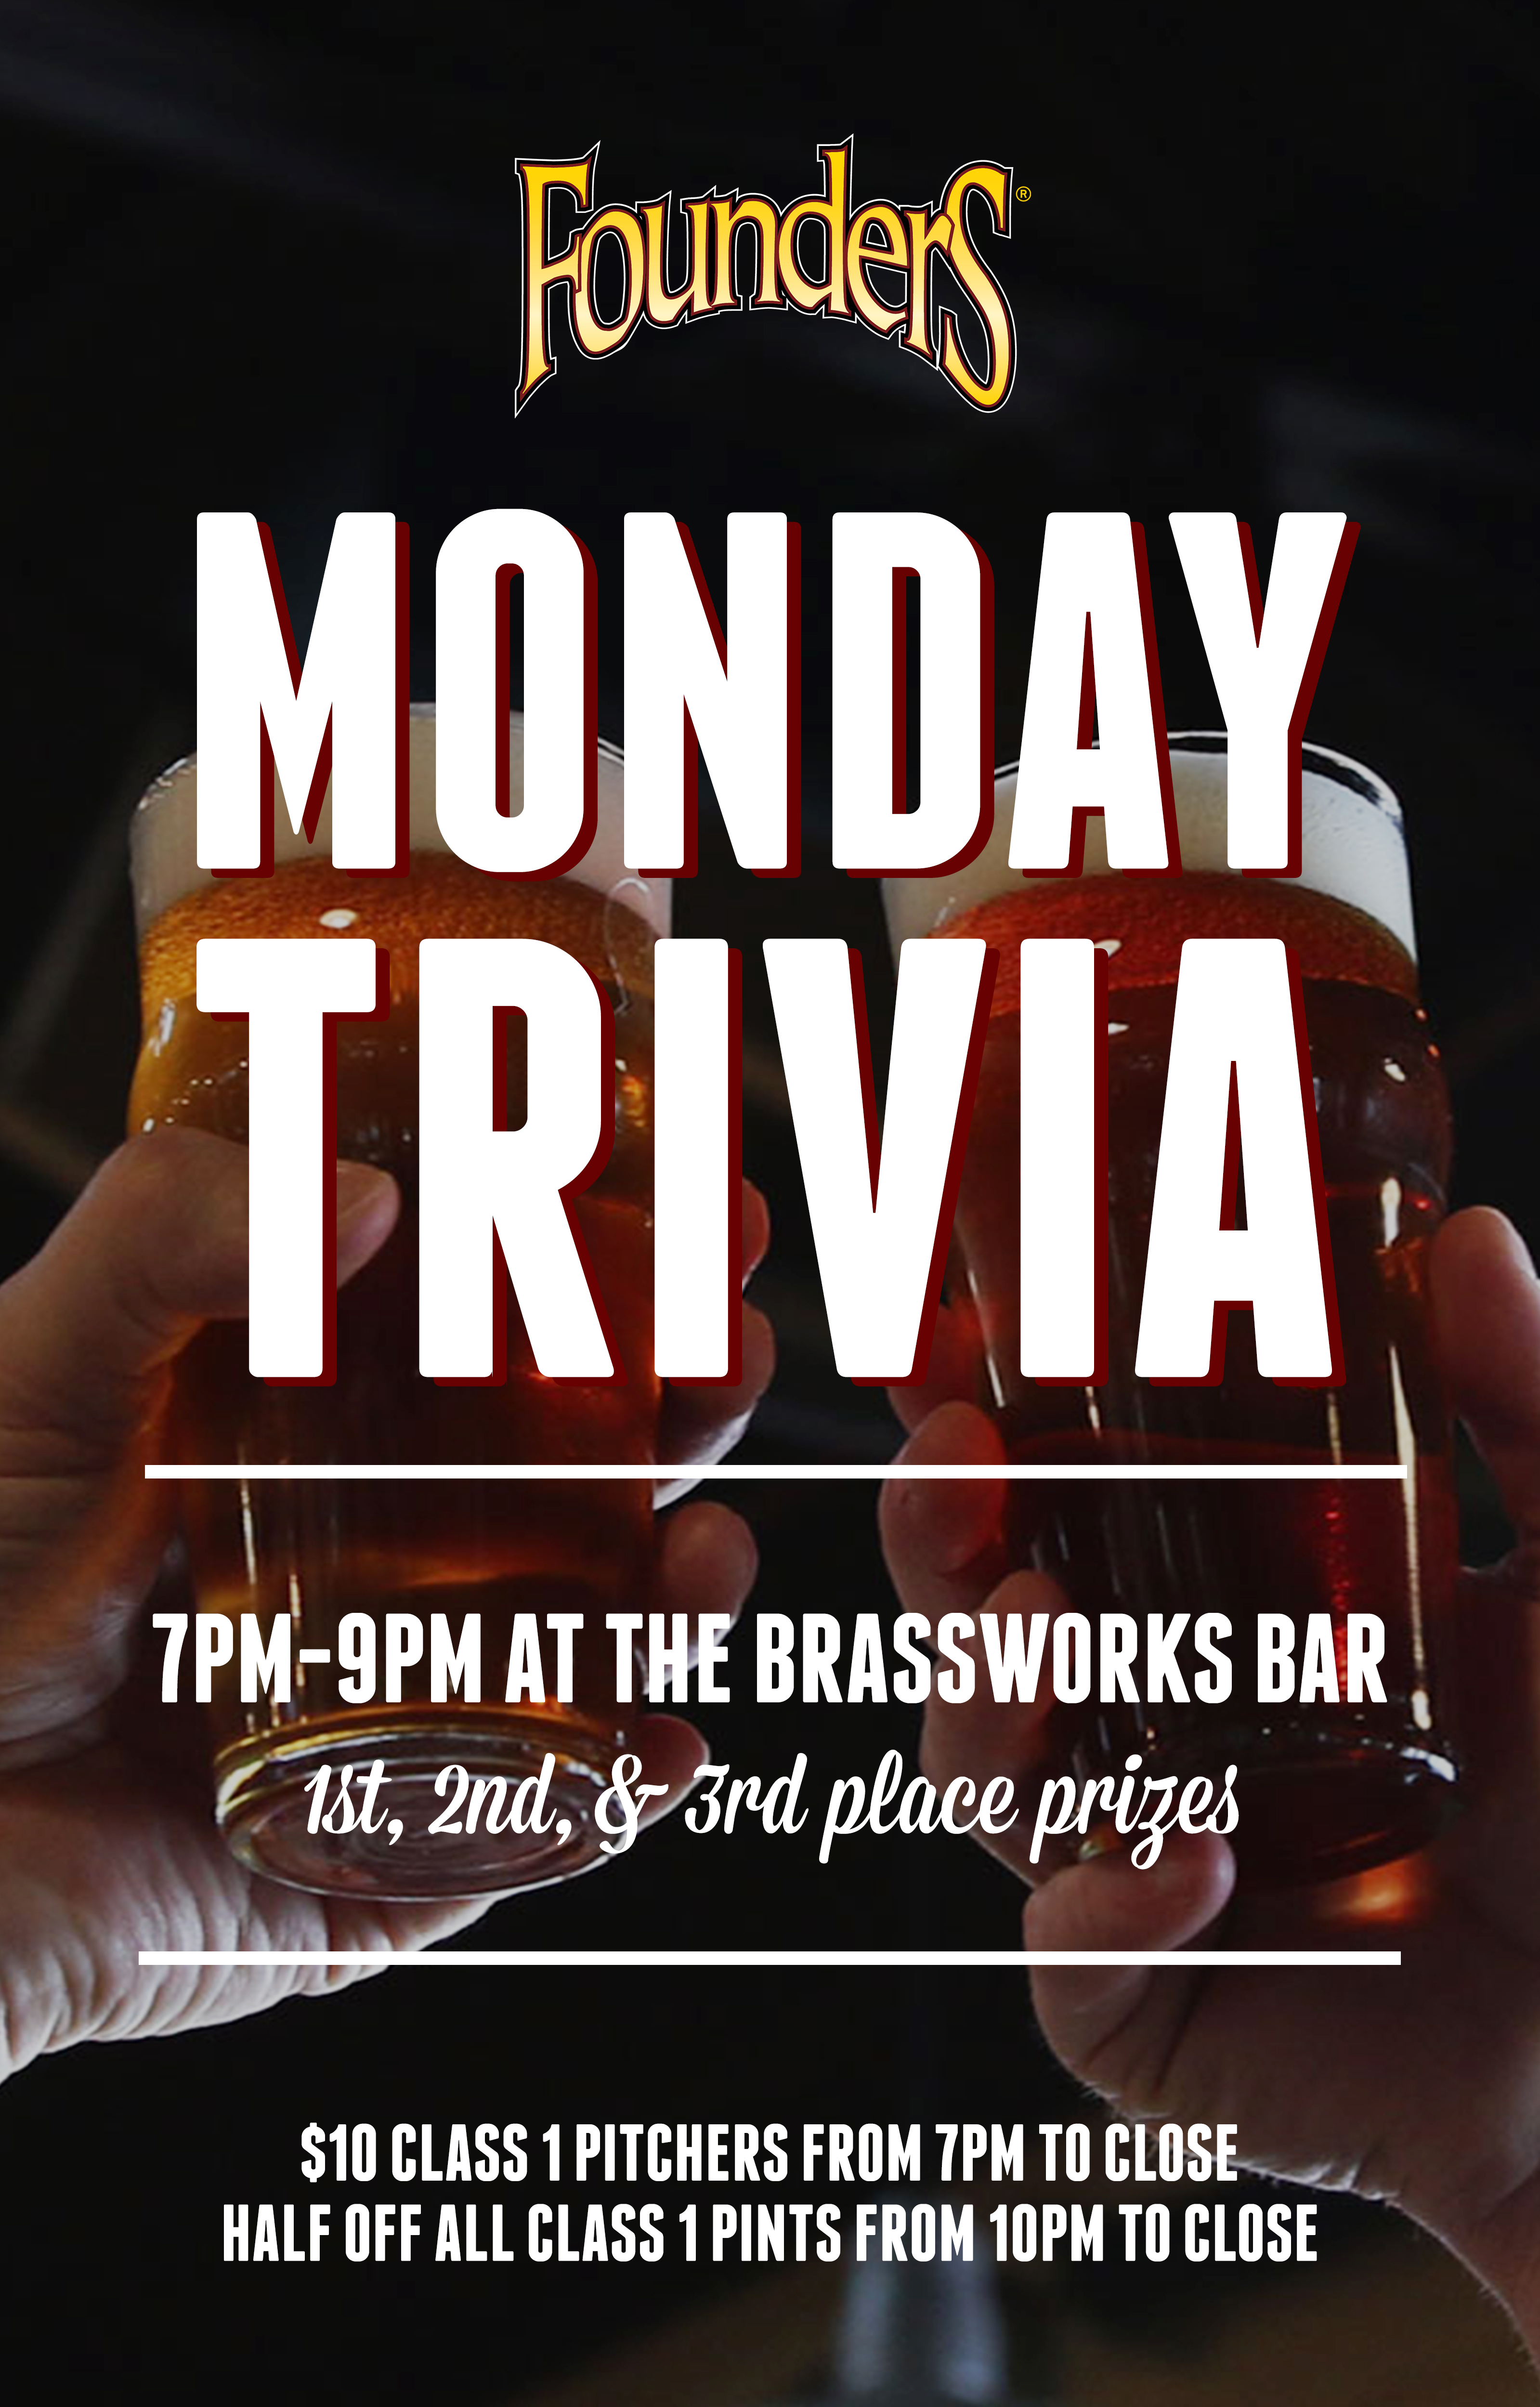 Monday Trivia event poster hosted by Founders Brewing Co,